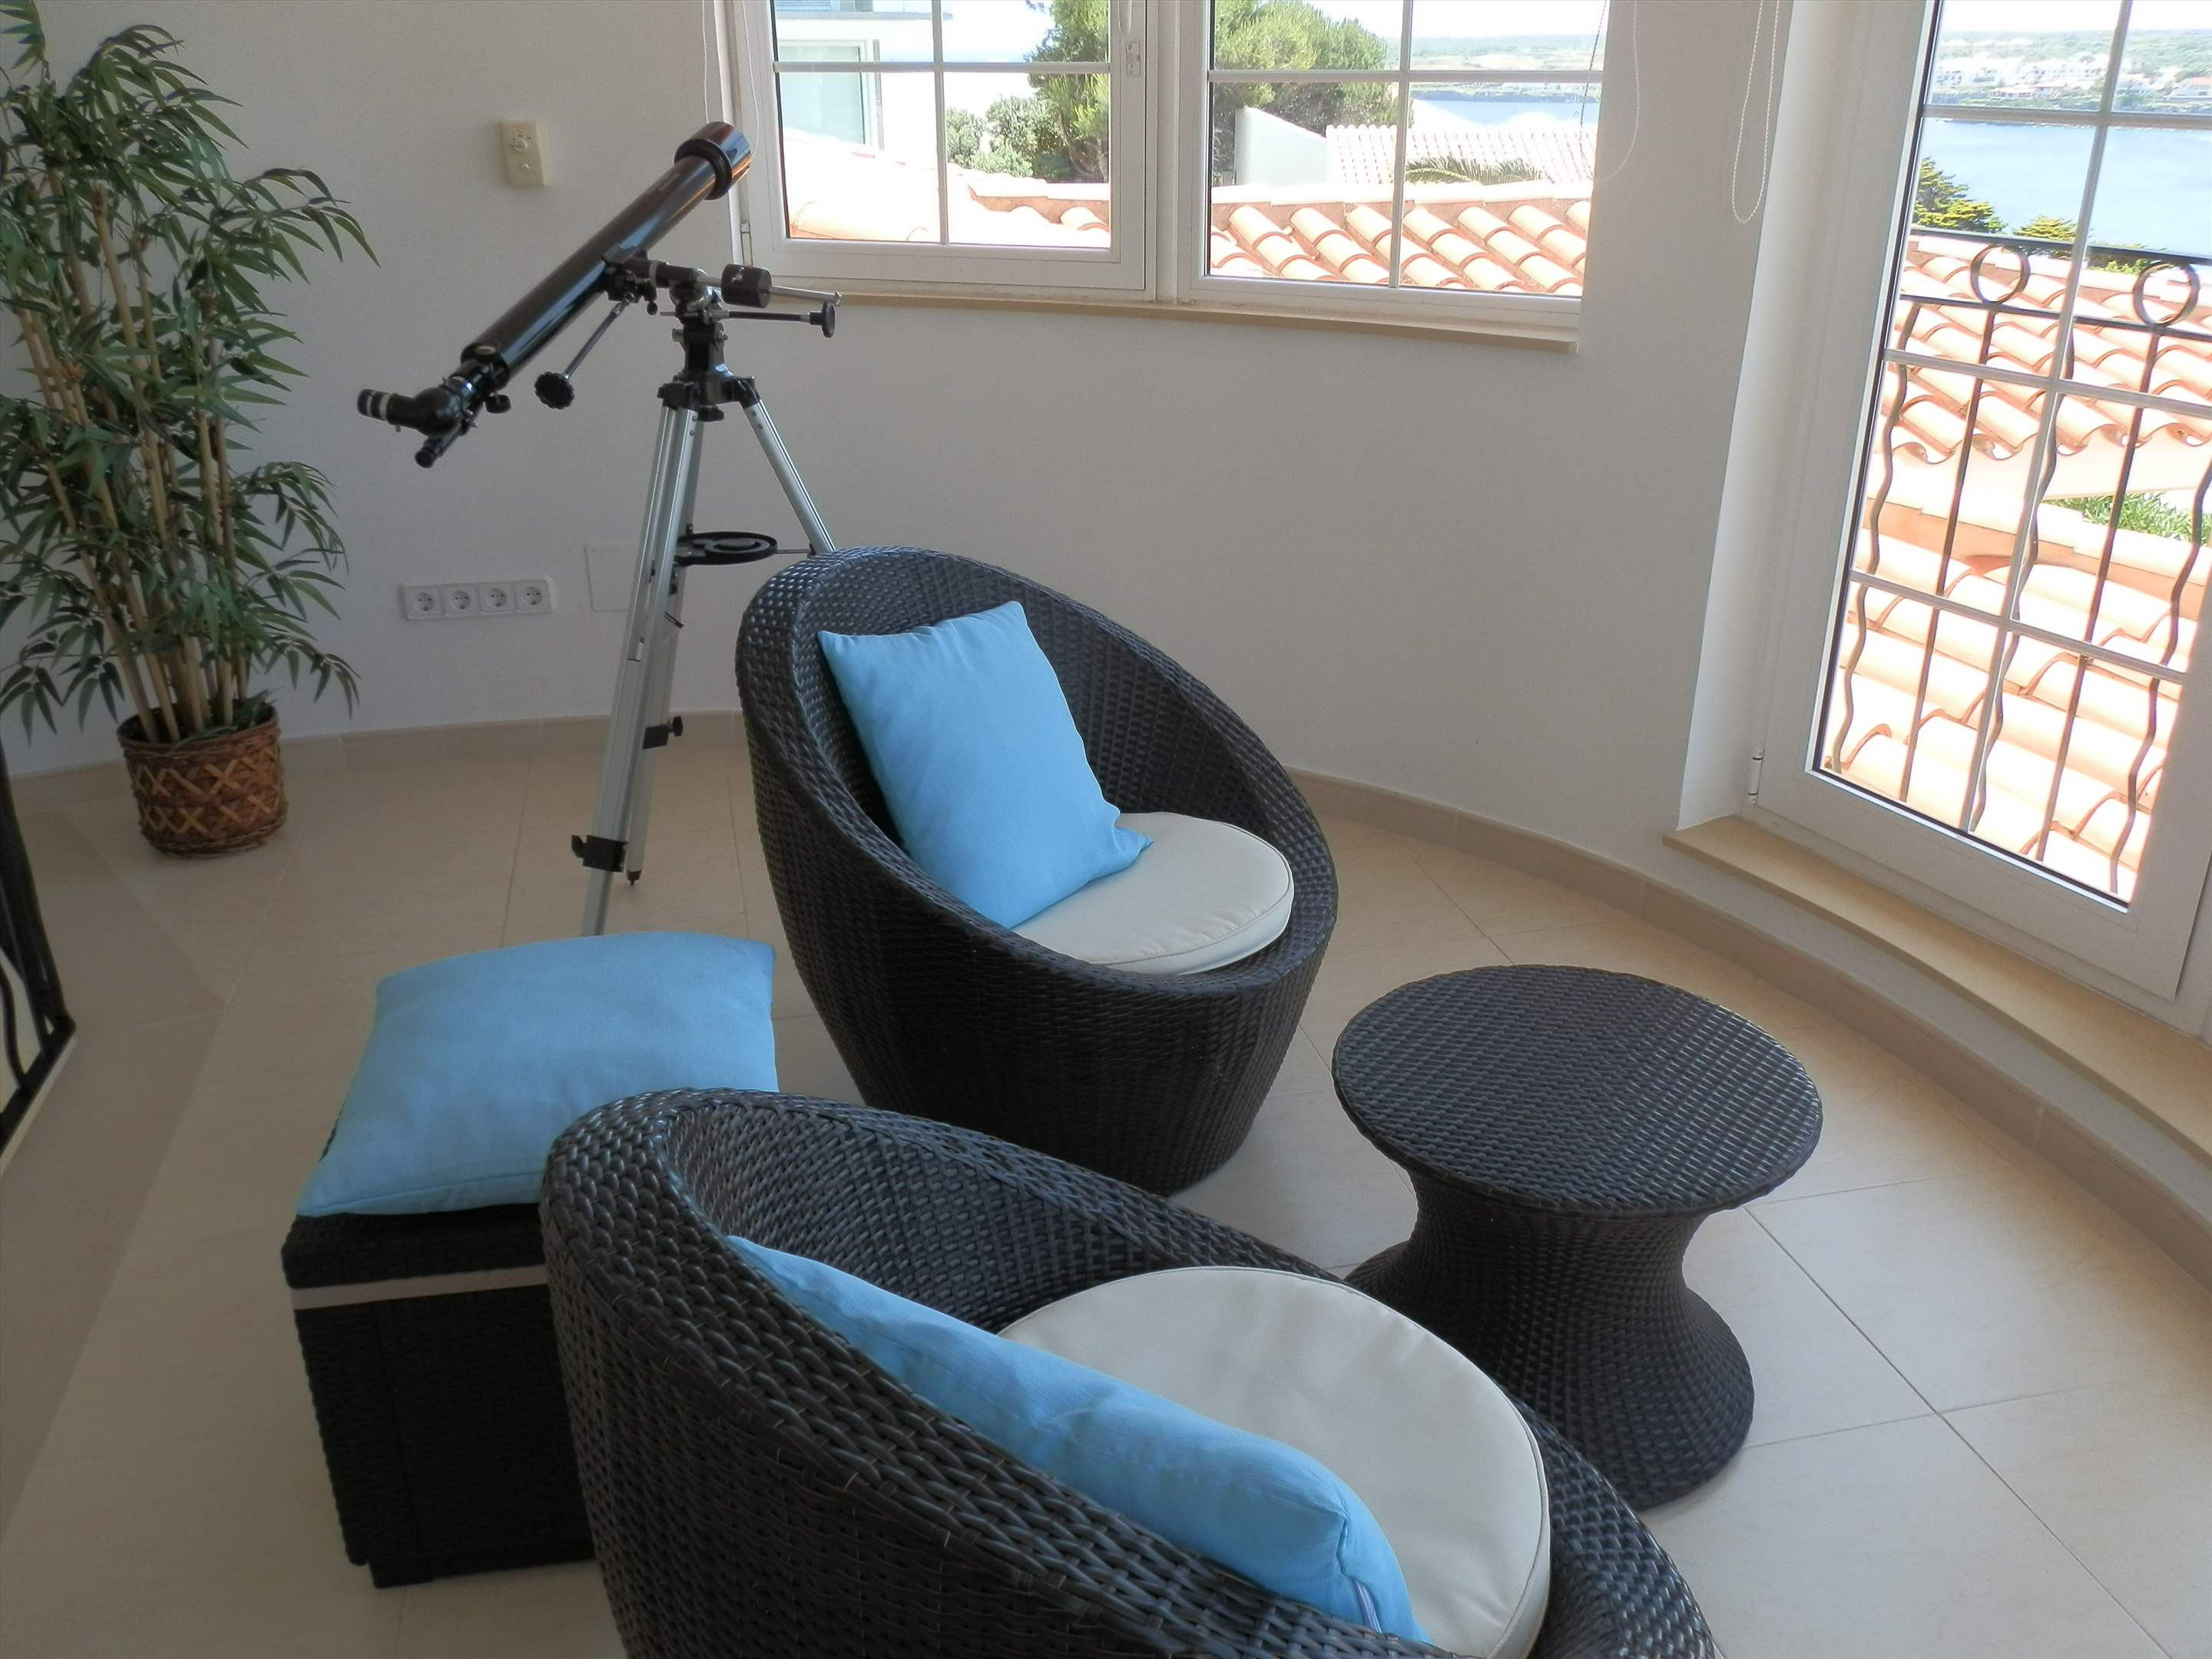 Son De Mar, 5 bedroom villa in Mahon, San Luis & South East, Menorca Photo #22